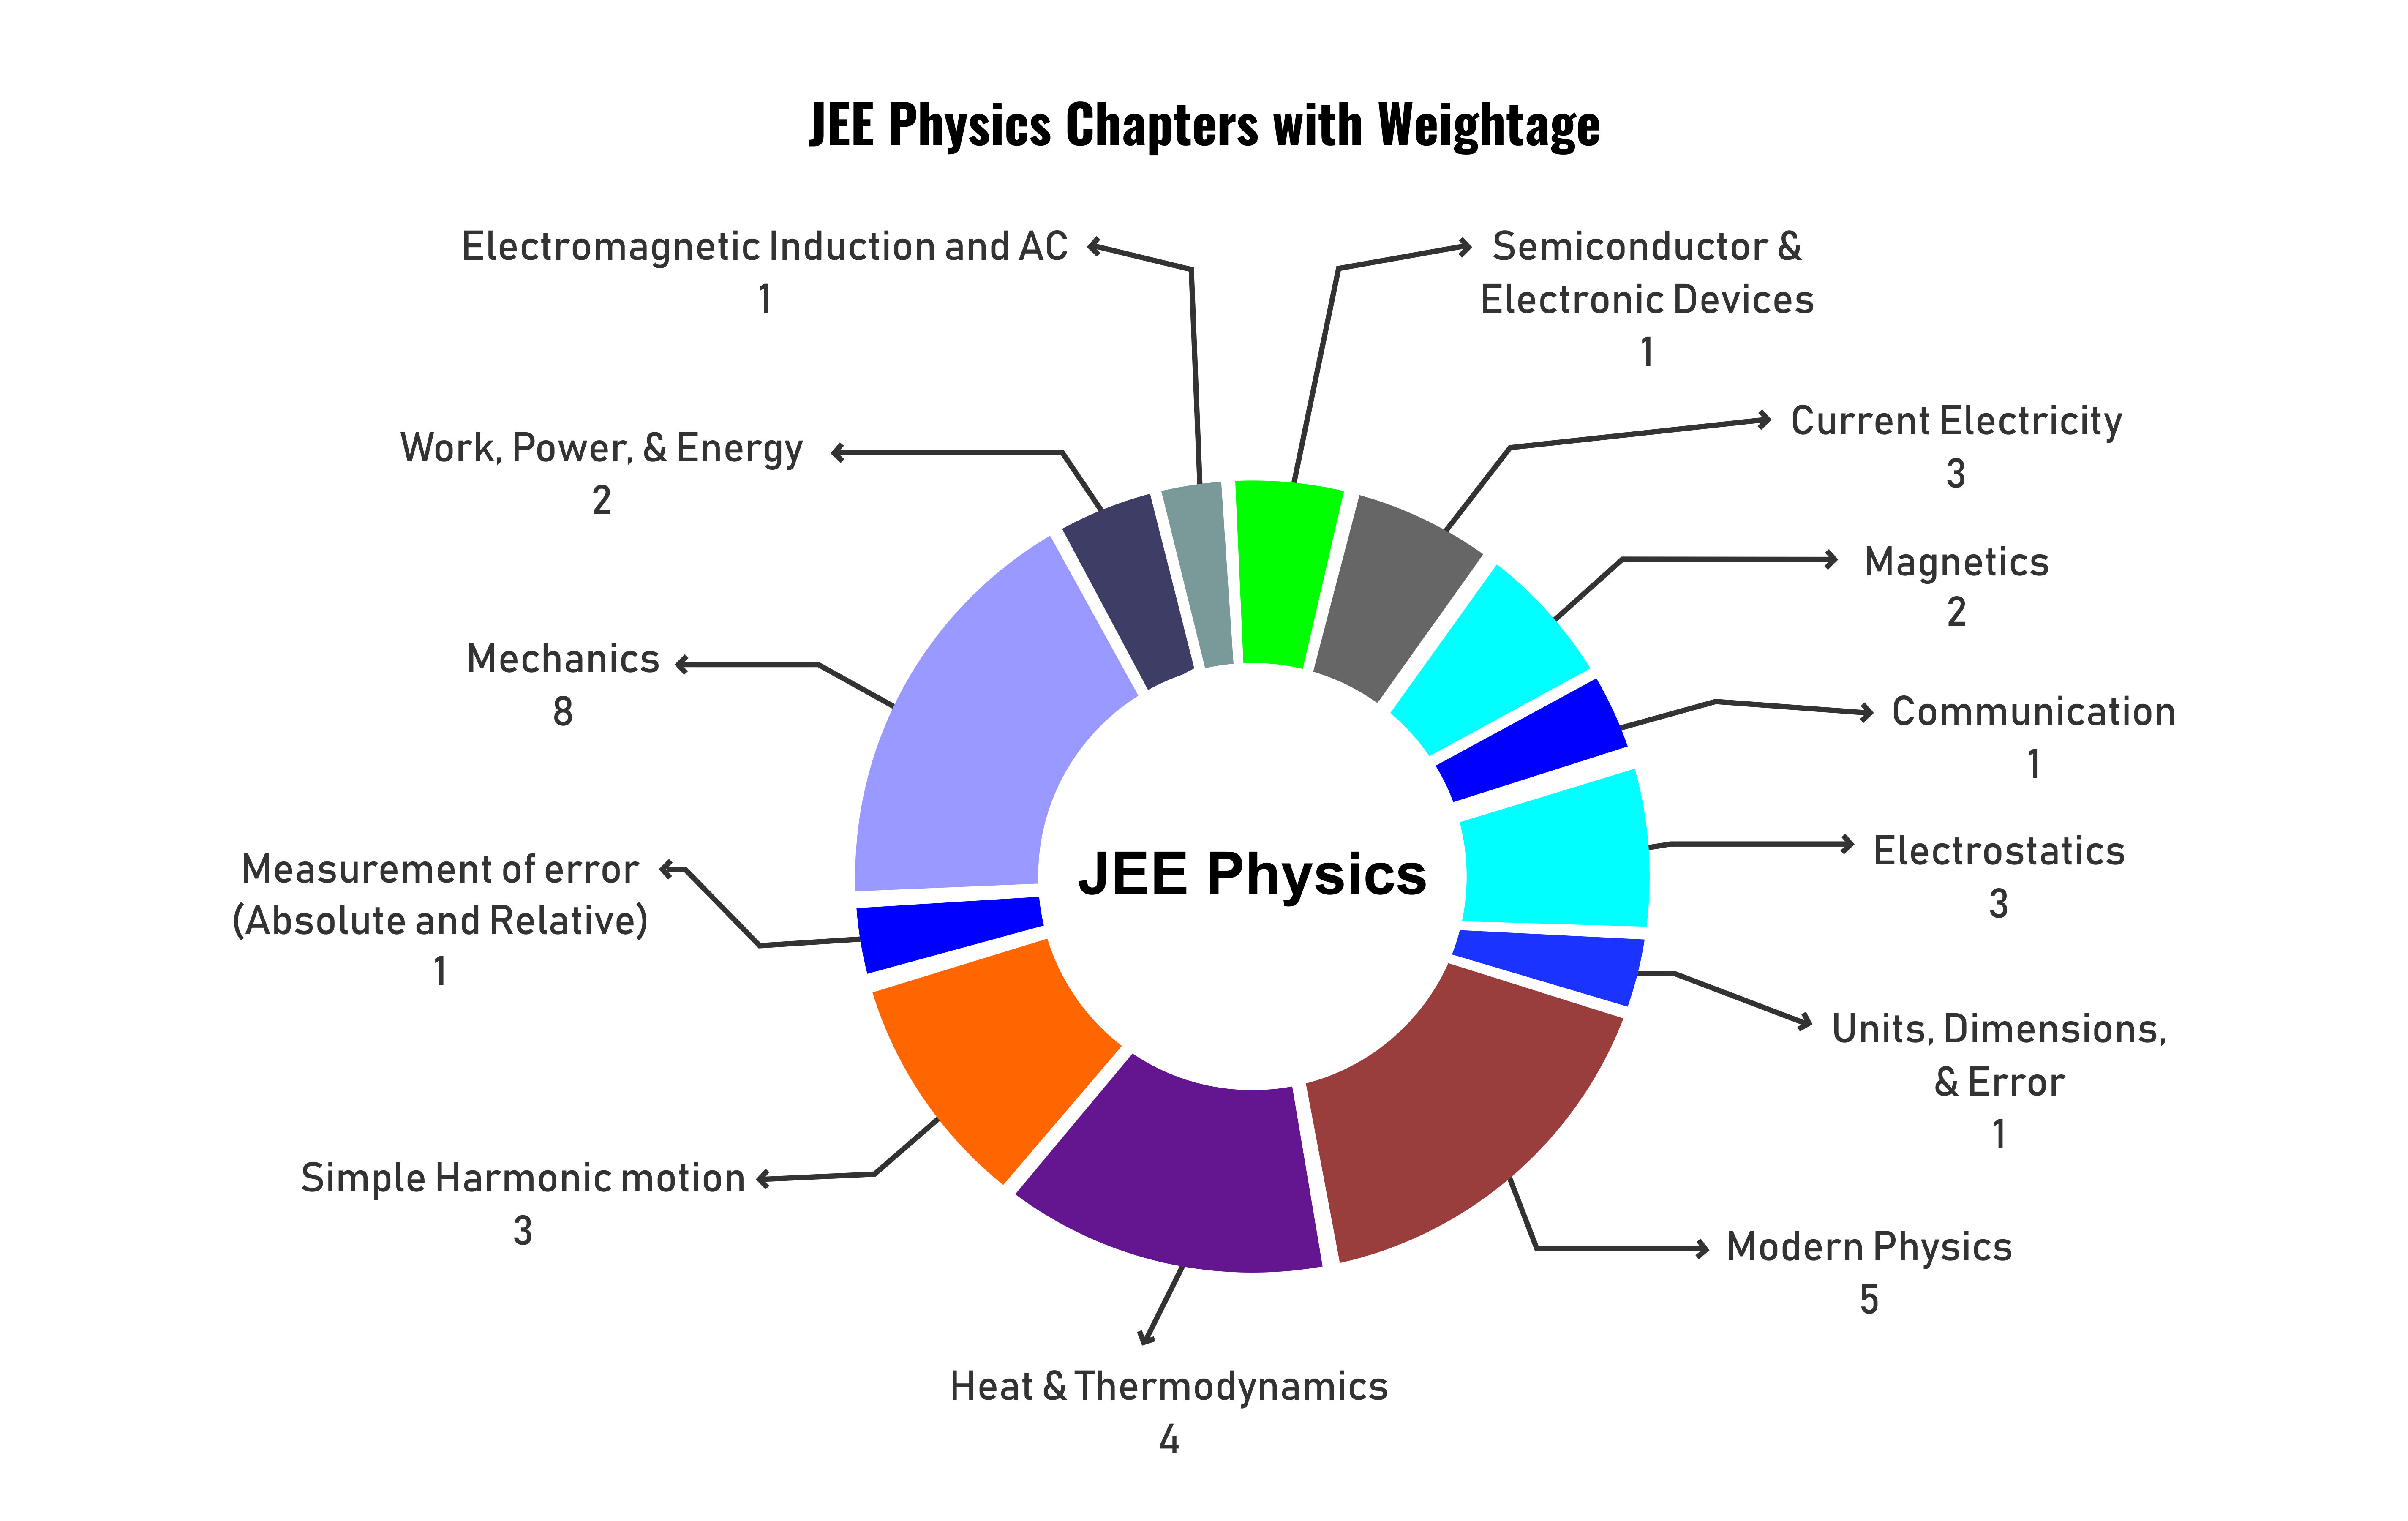 JEE Physics Weightage